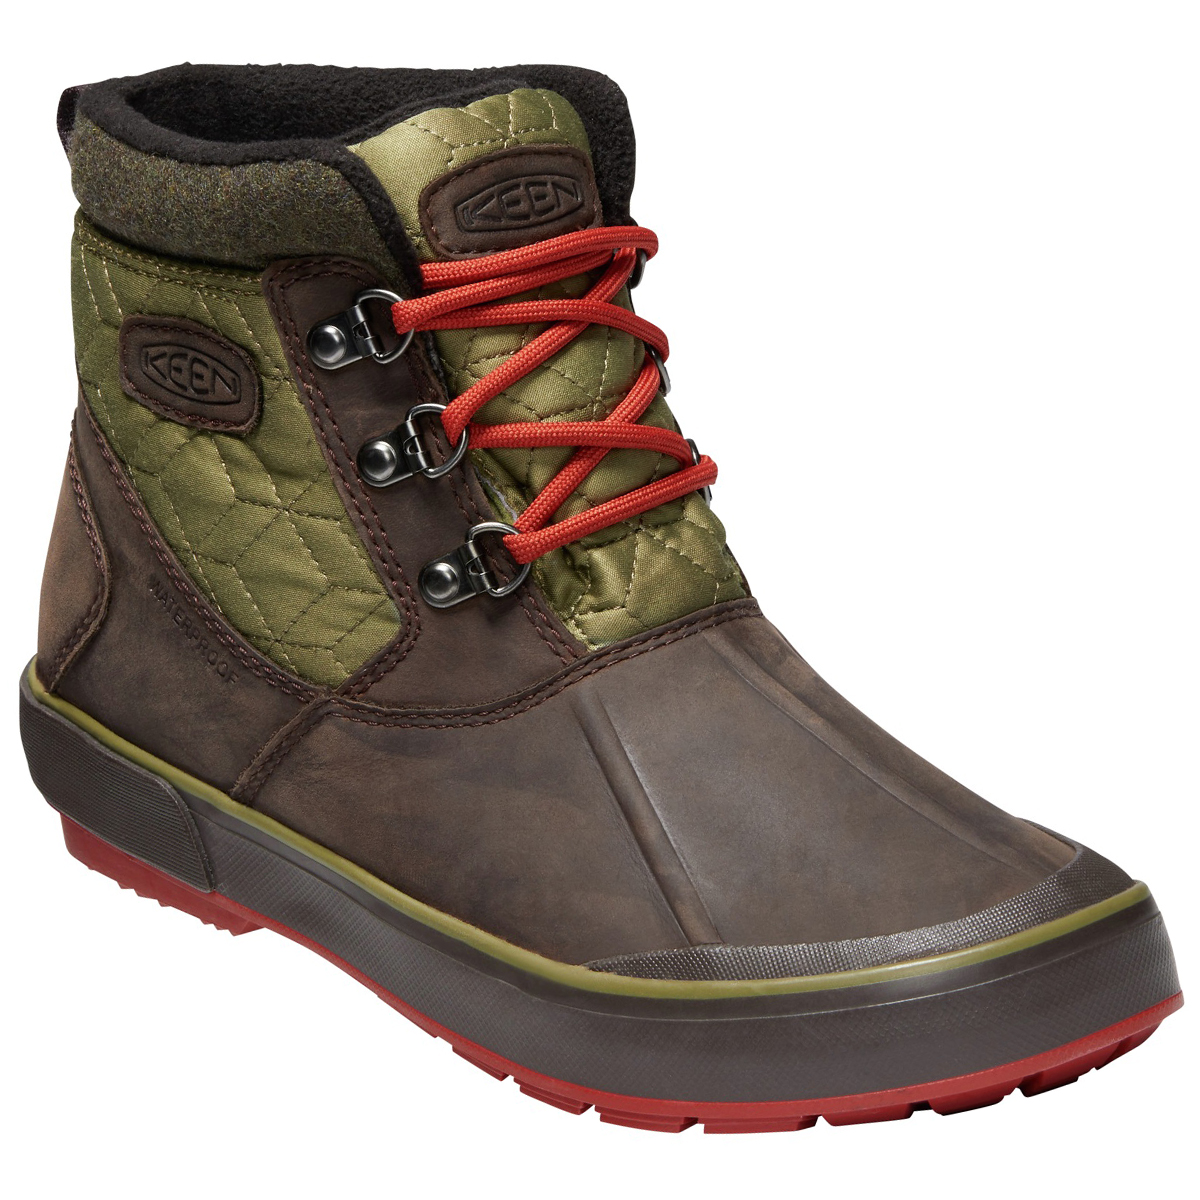 Keen Women's Elsa Ii Quilted Waterproof Insulated Ankle Boots - Brown, 8